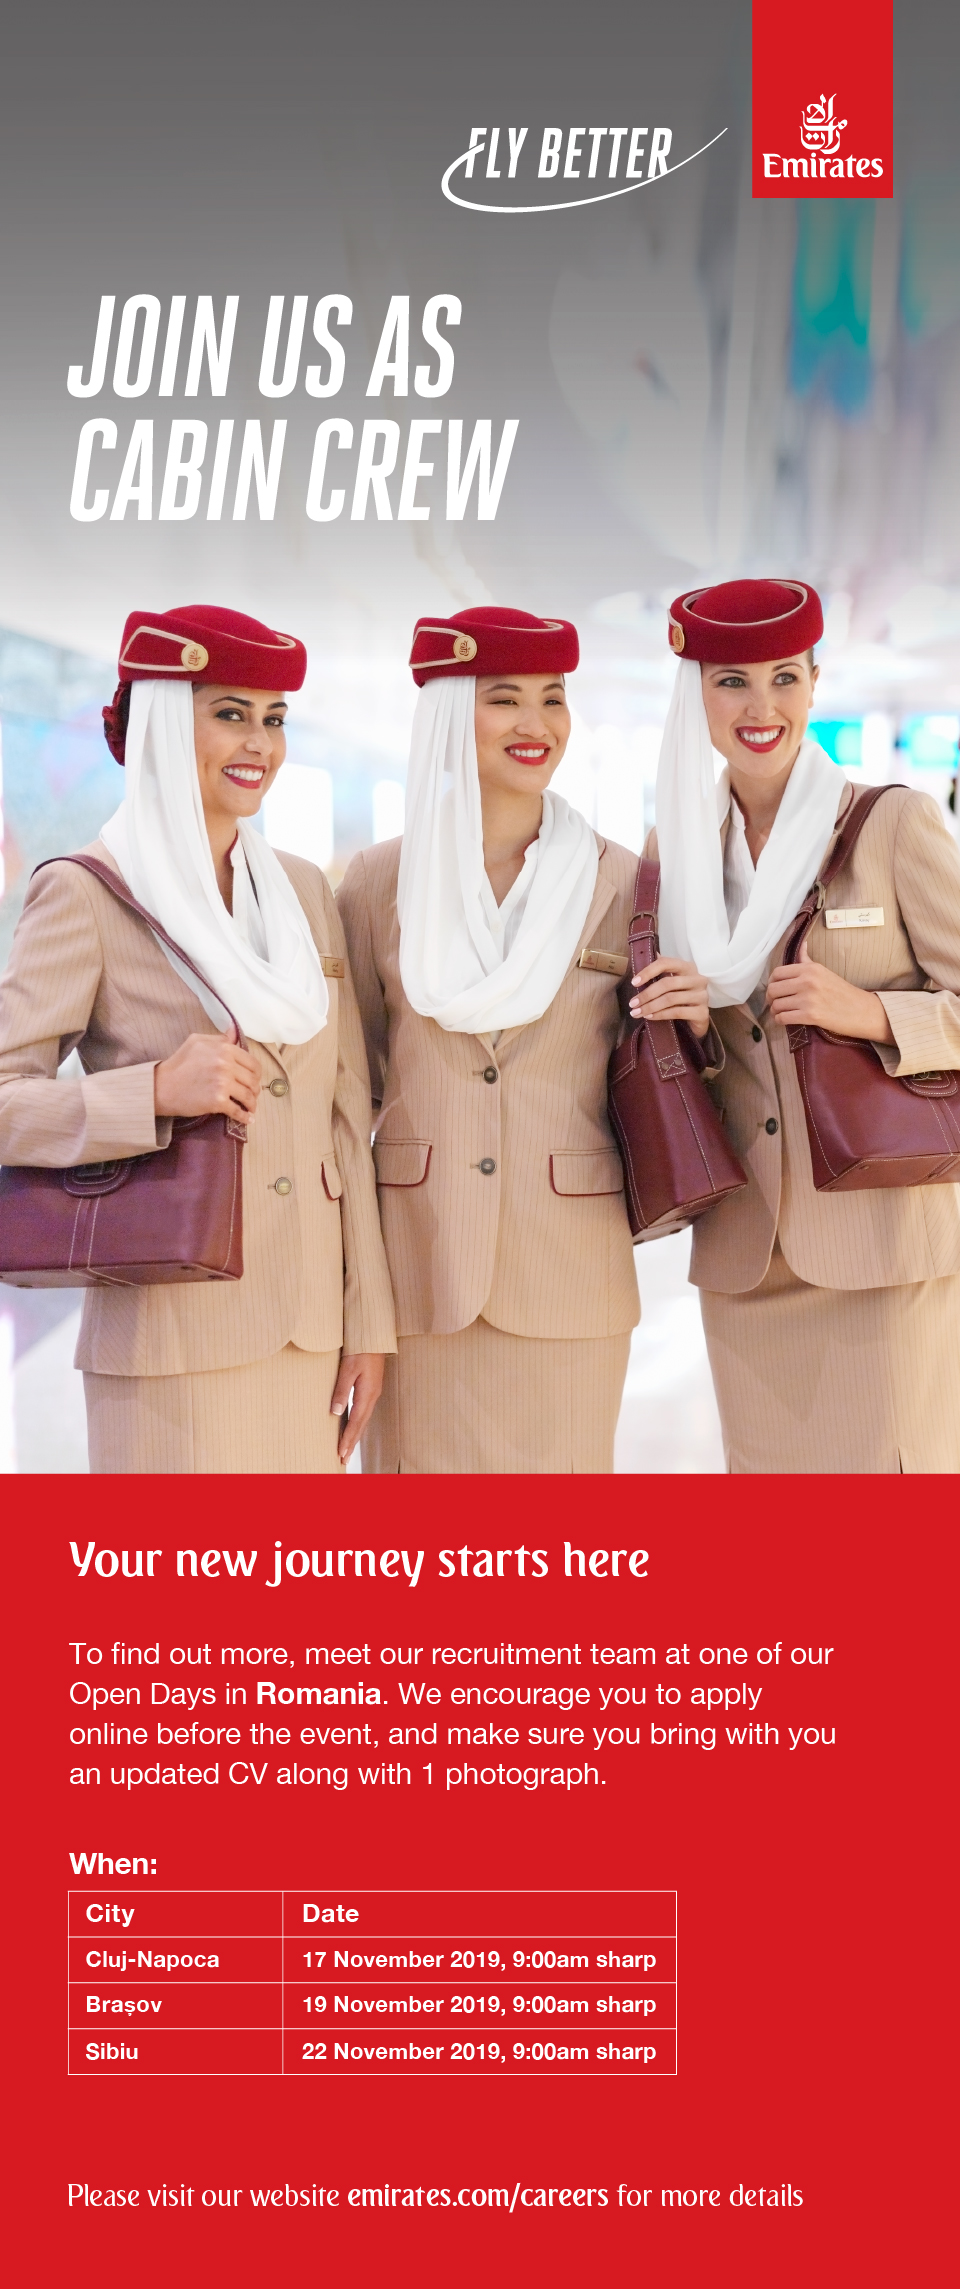 Cabin Crew, Cluj, Brasov, Sibiu